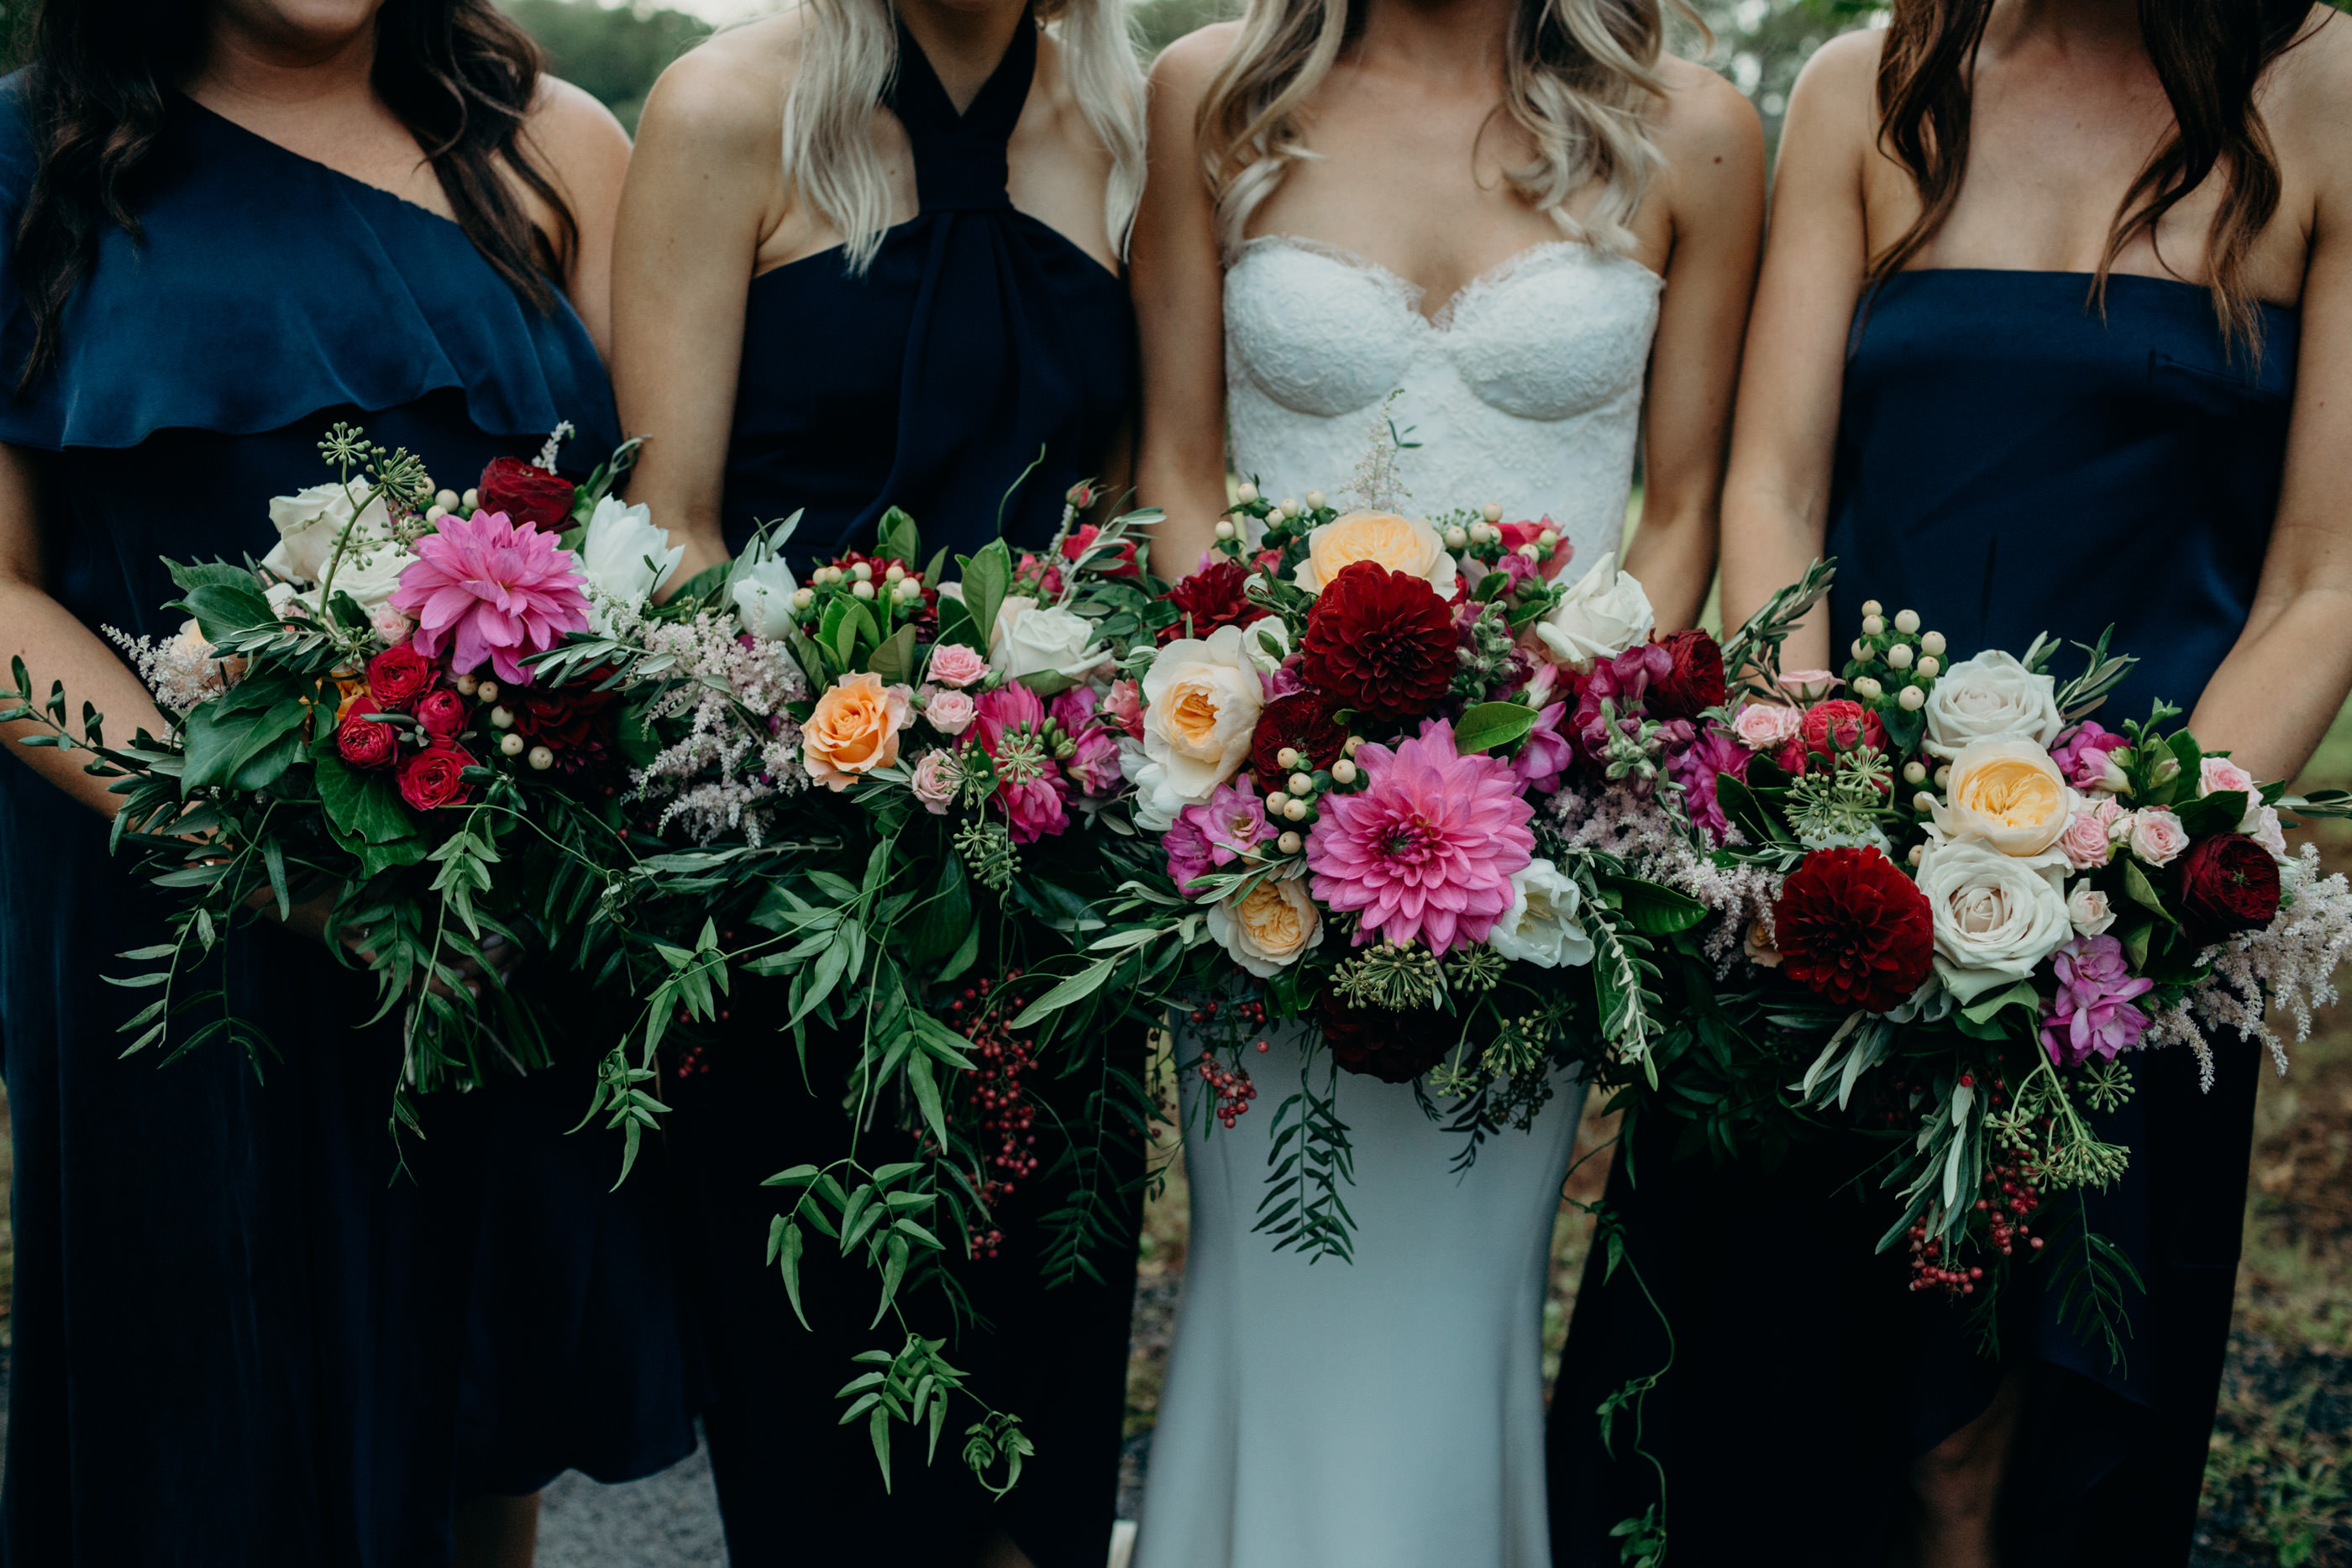 Rich Wedding Bouquets Featuring Dahlias